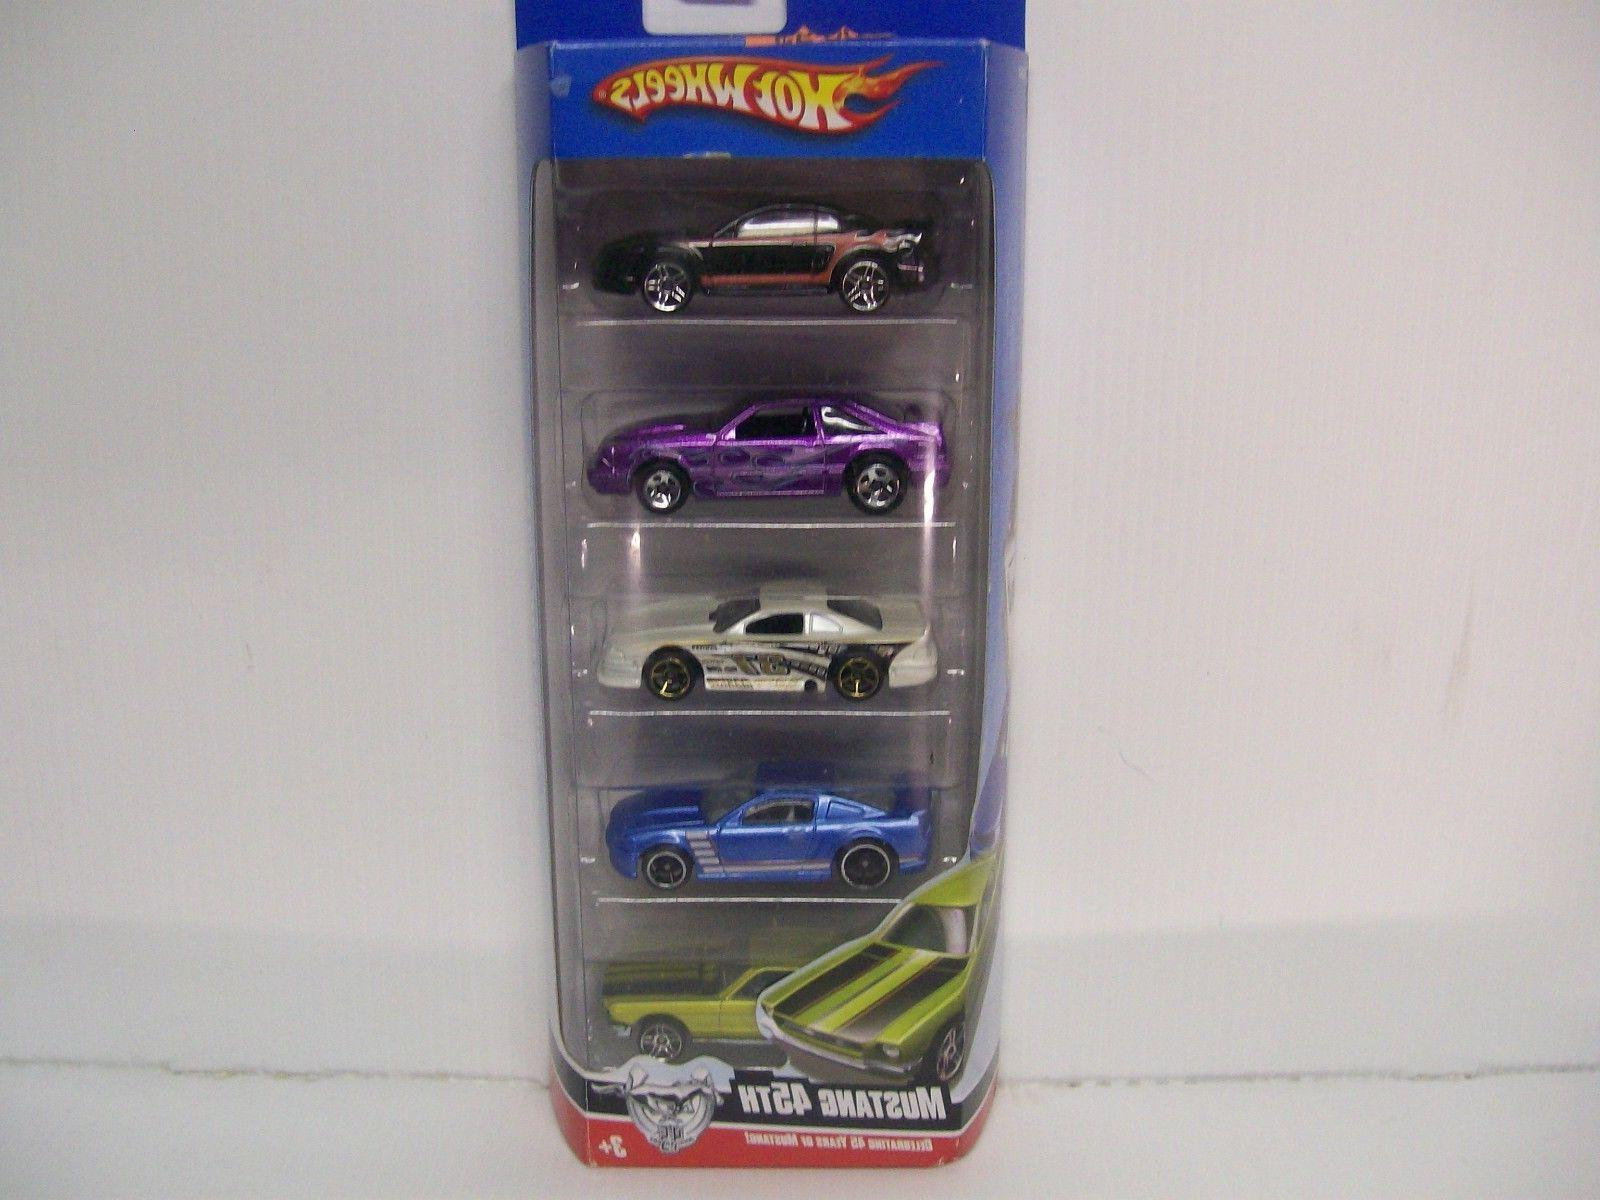 45th mustang anniversary 5 pack